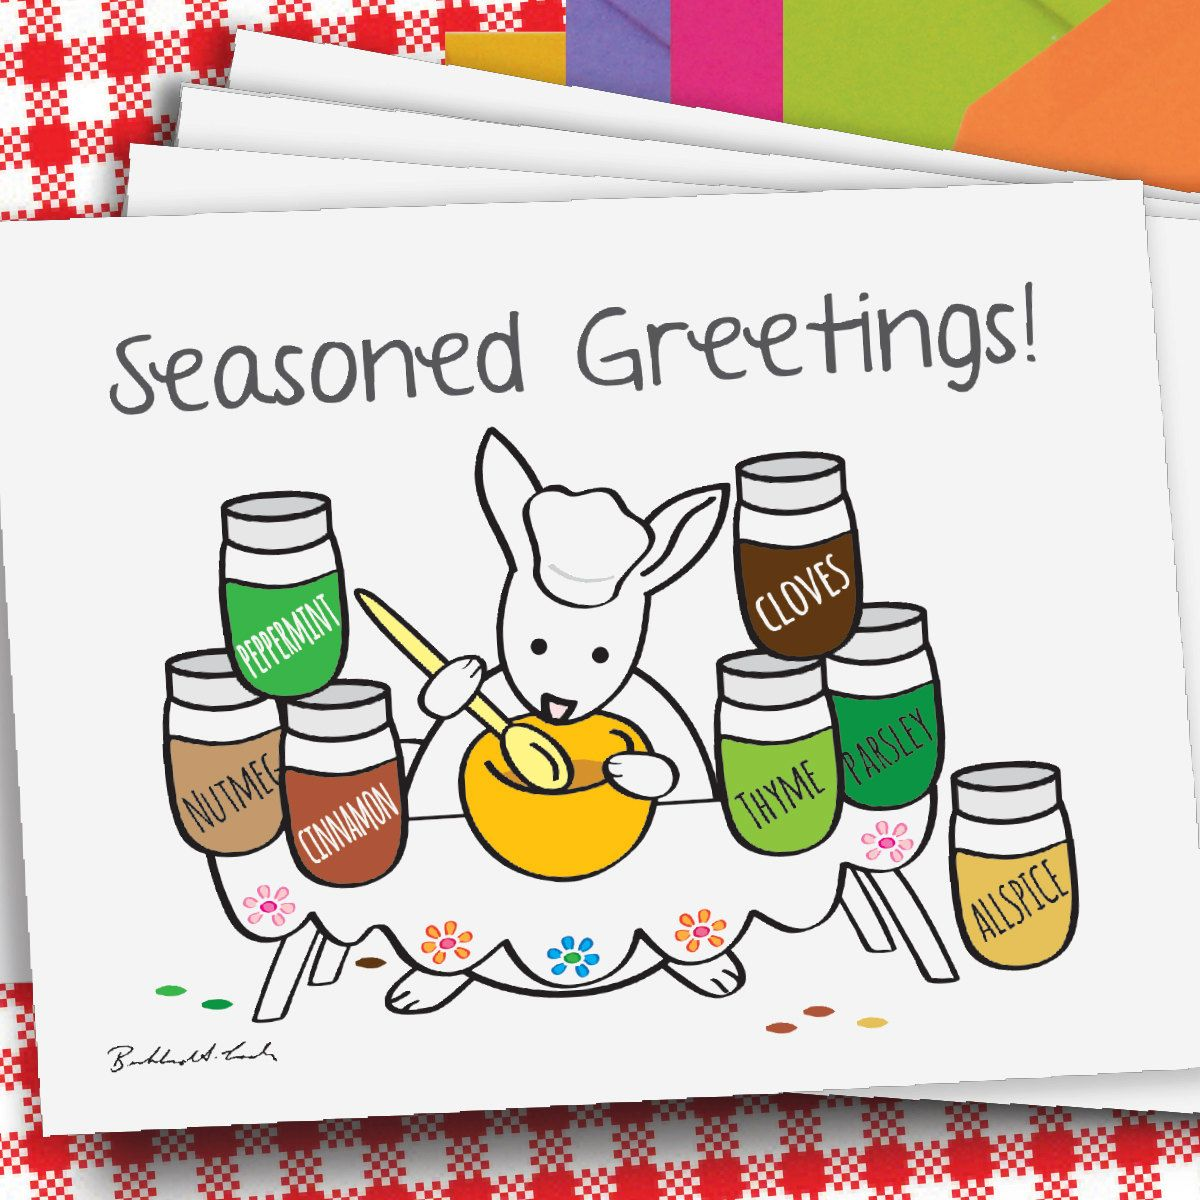 Seasoned greetings 8 card pack free shipping handmade 8 card pack free shipping handmade beckhardt lada design holiday cardsveganchristmas kristyandbryce Image collections